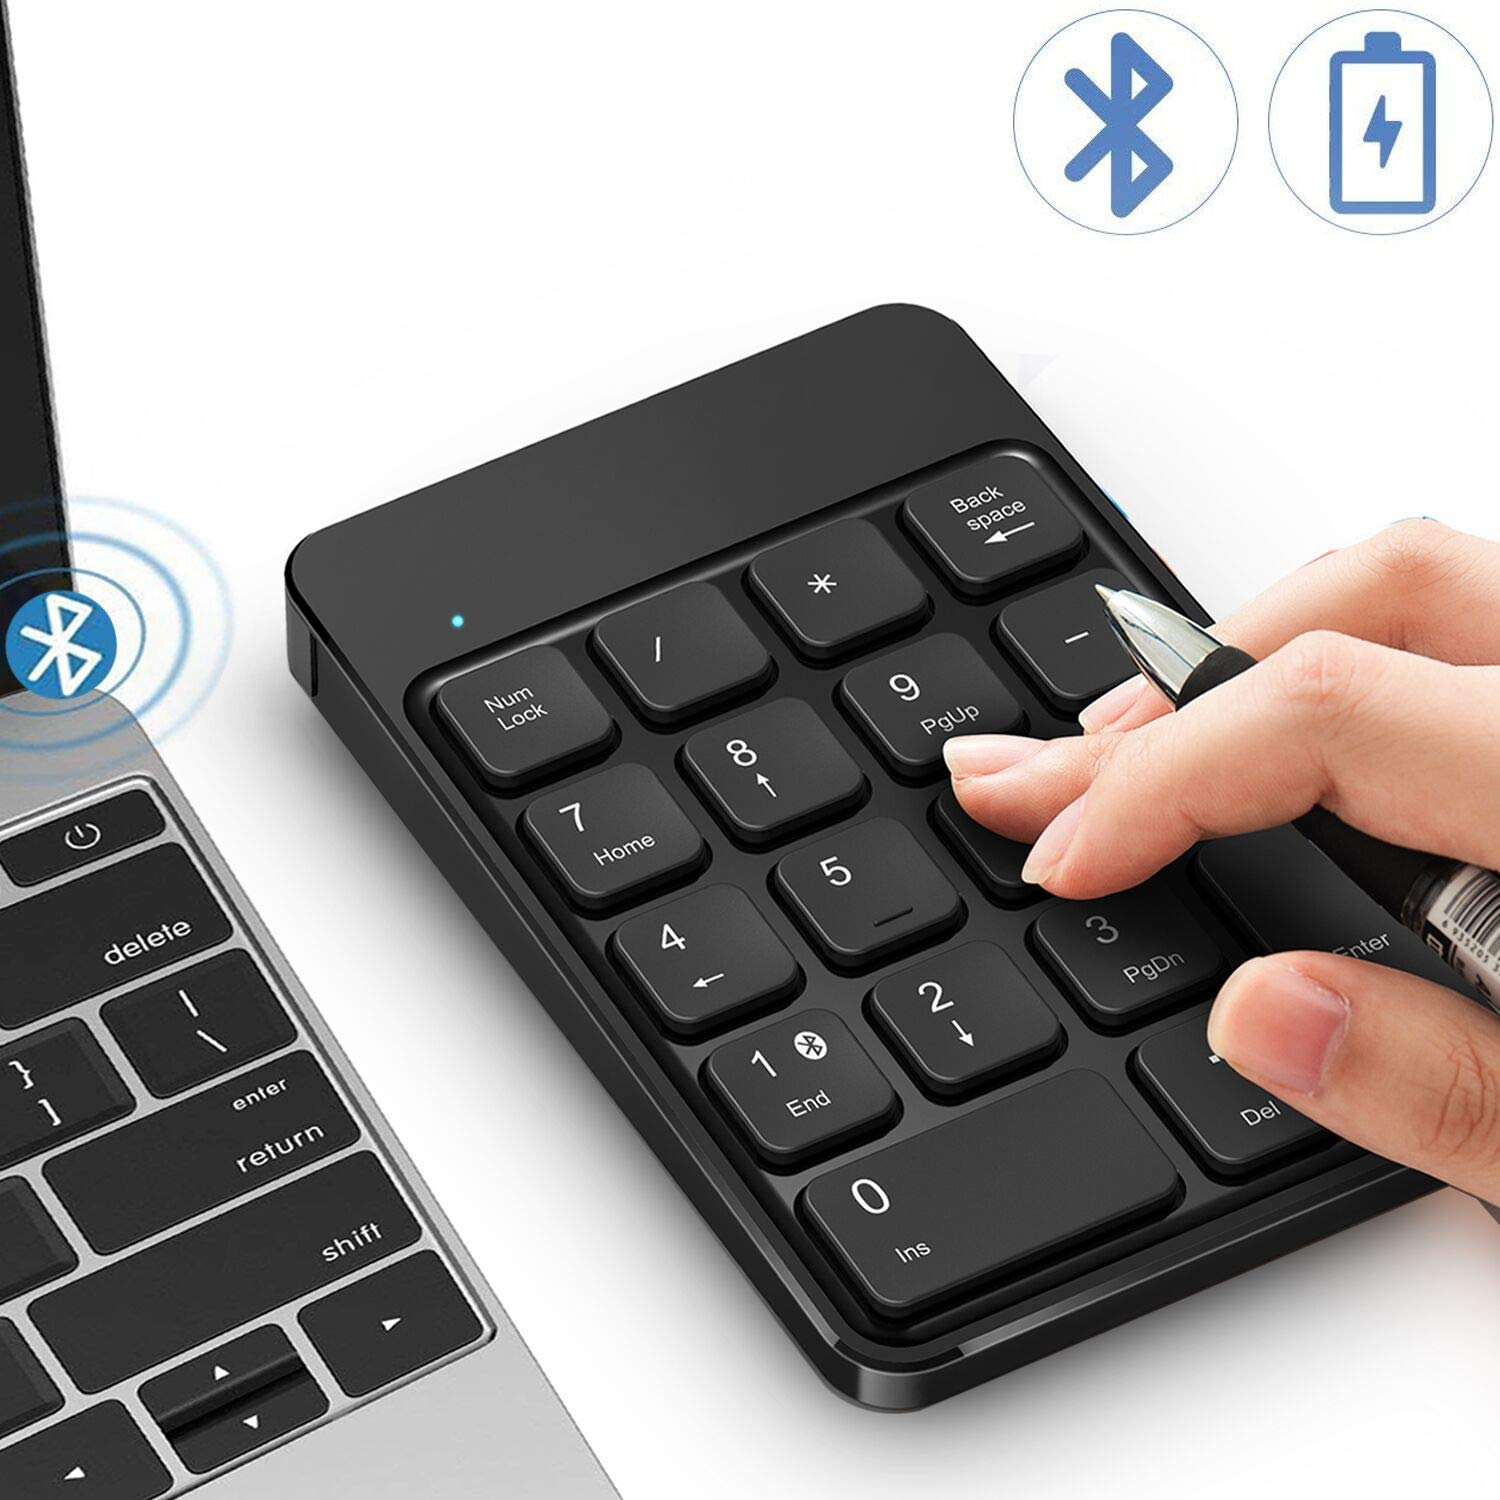 dd44f309f9a Bluetooth Number Pad, Wireless Numeric Keypad - Lekvey Rechargeable Slim  18-Key Number Keypad Keyboard Compatible for MacBook, iMac, OS, Windows,  Laptop, ...